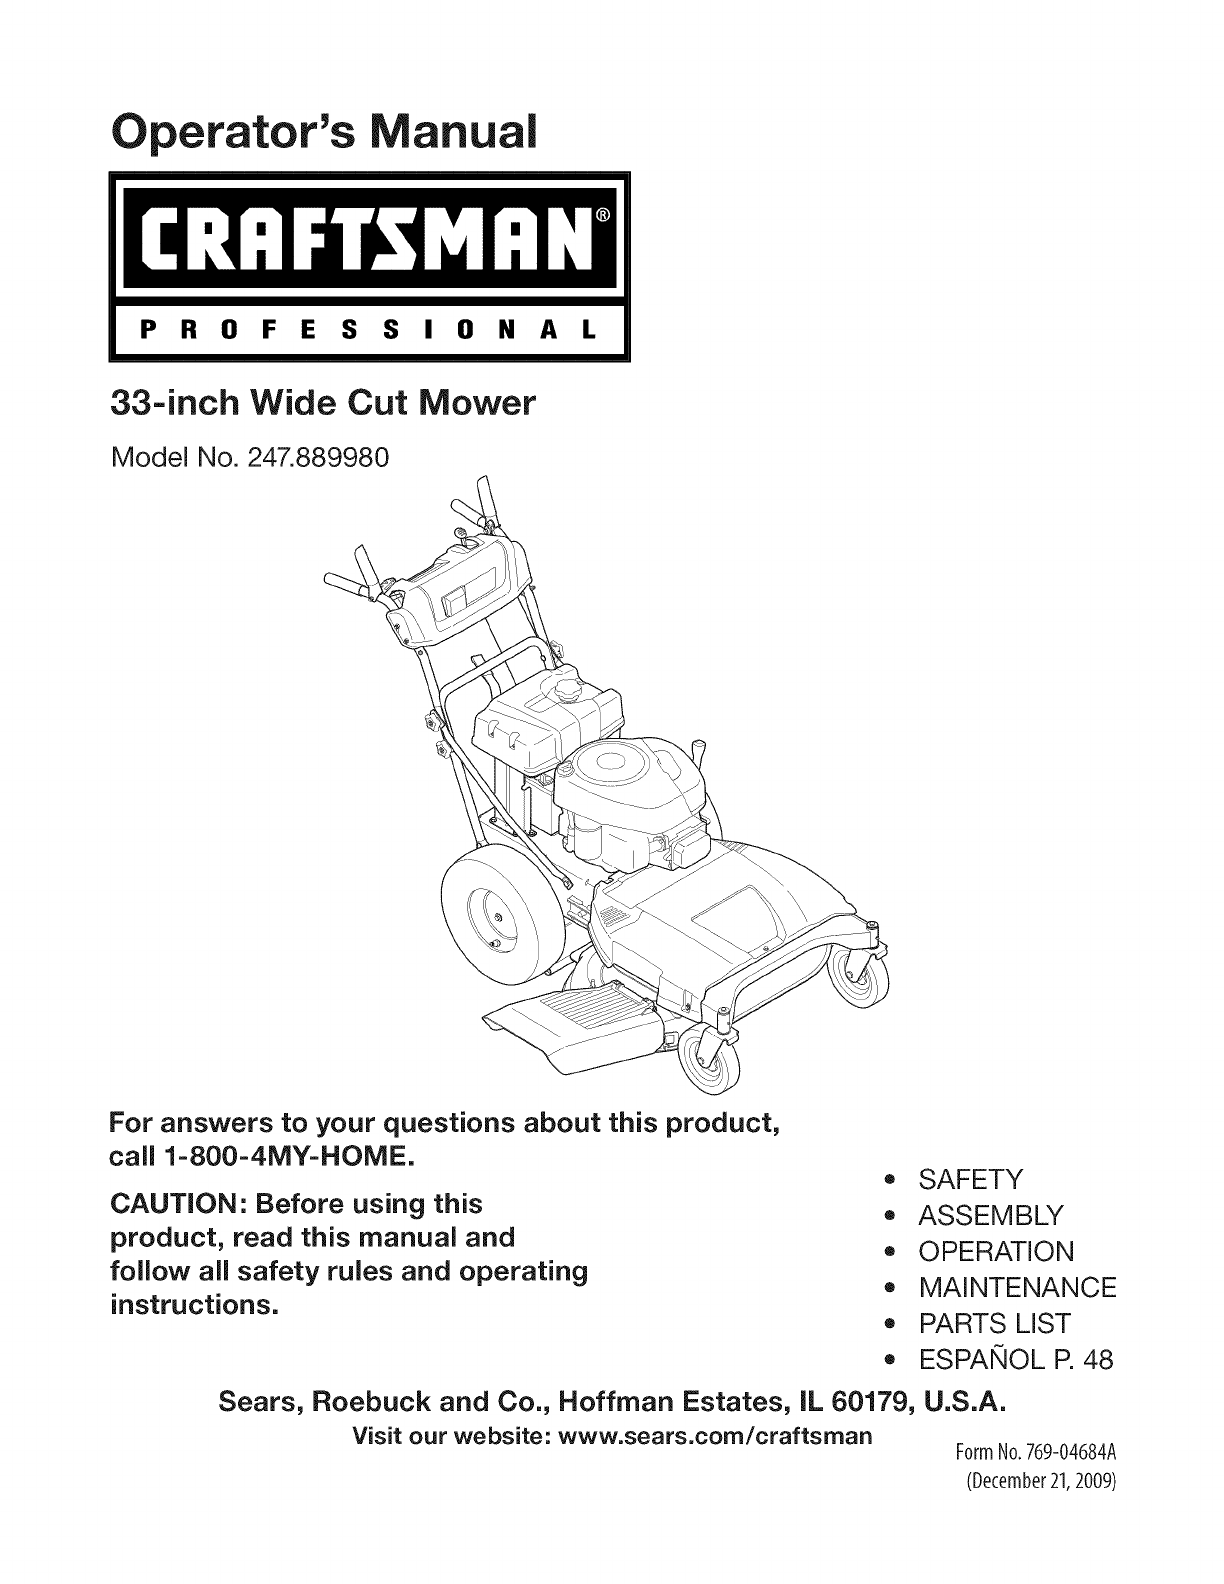 e941d769 5f50 49c0 9353 4a40e8257528 bg1 craftsman lawn mower 247 889980 user guide manualsonline com craftsman ys 4500 wiring diagram at creativeand.co